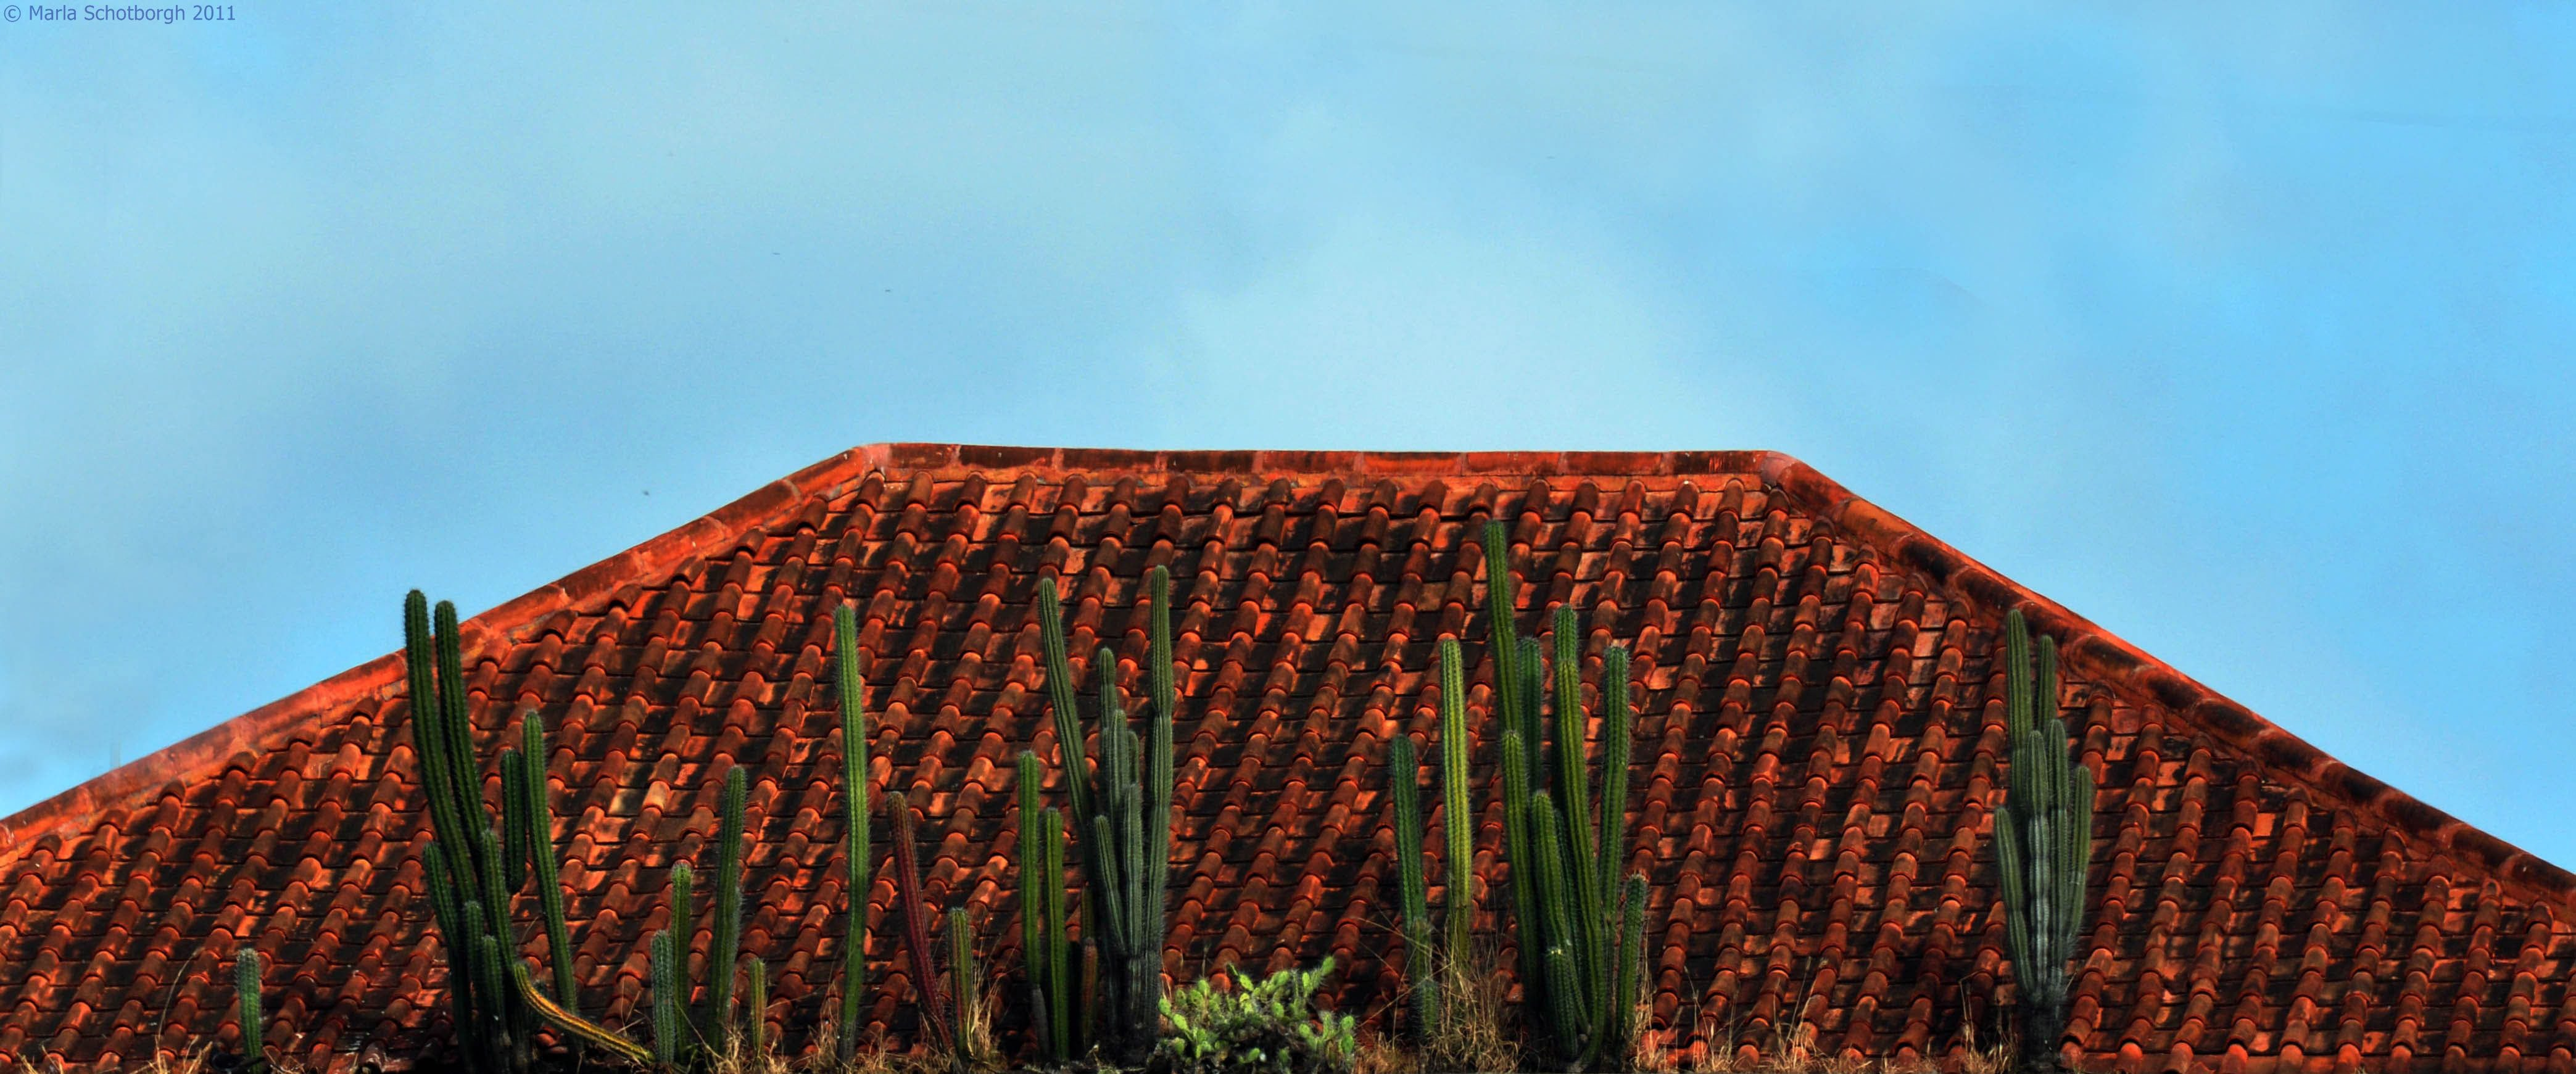 Cactus on Roof